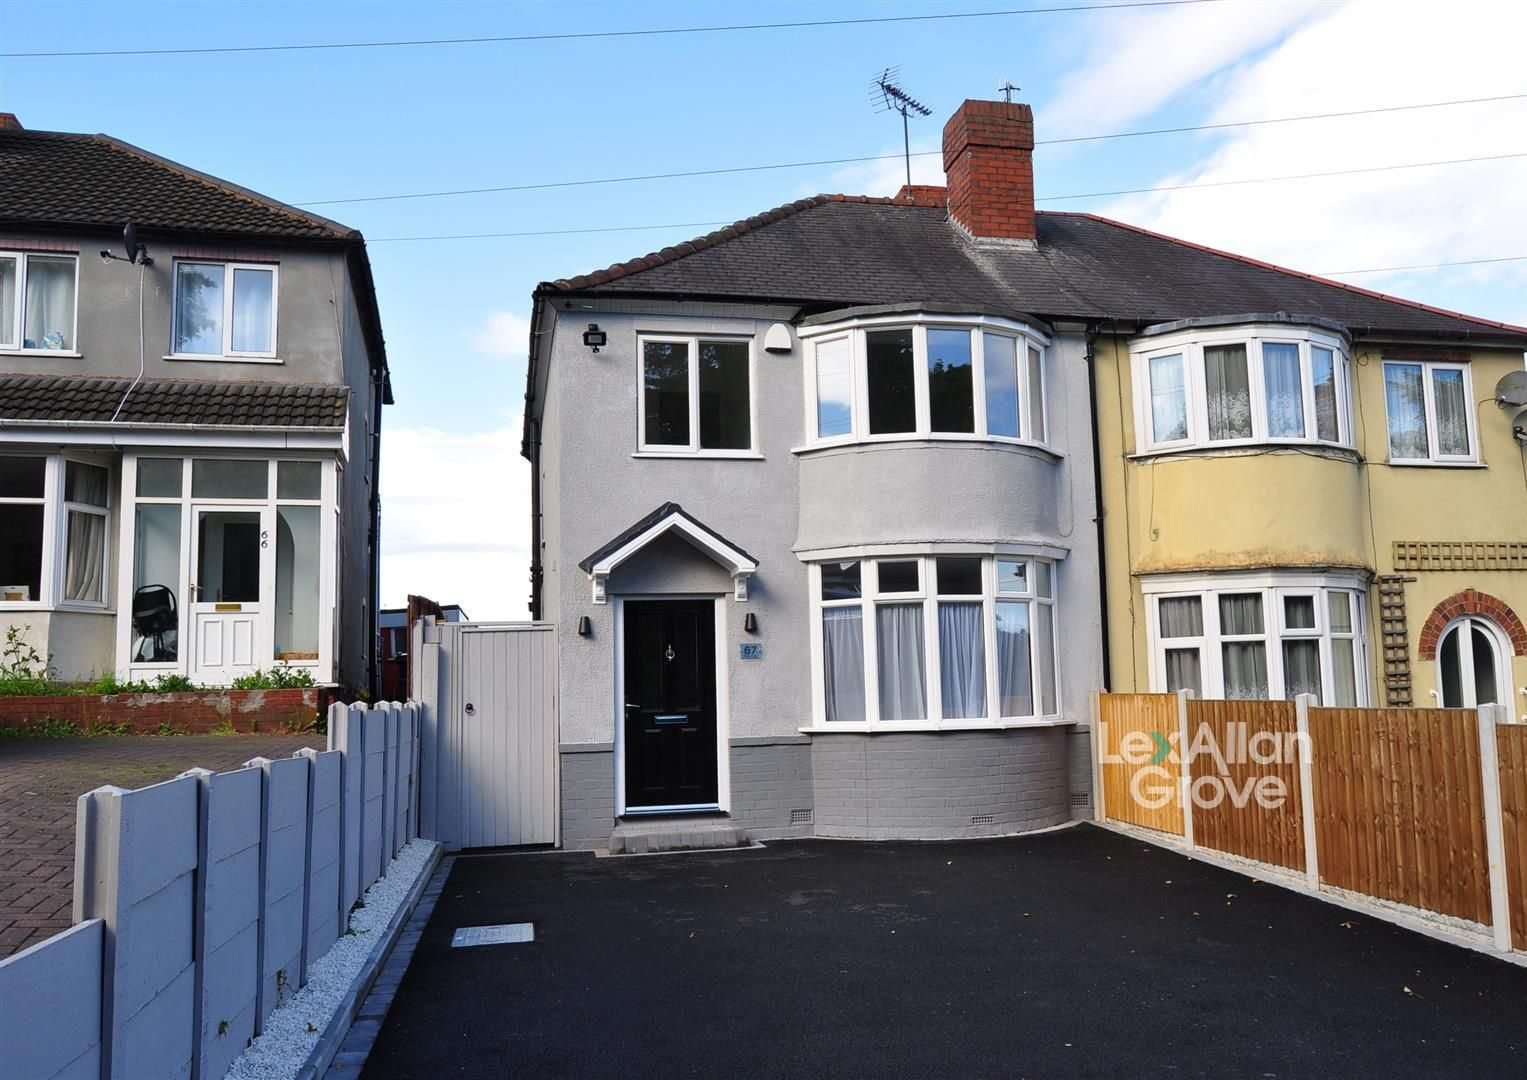 3 bed semi-detached for sale, B65